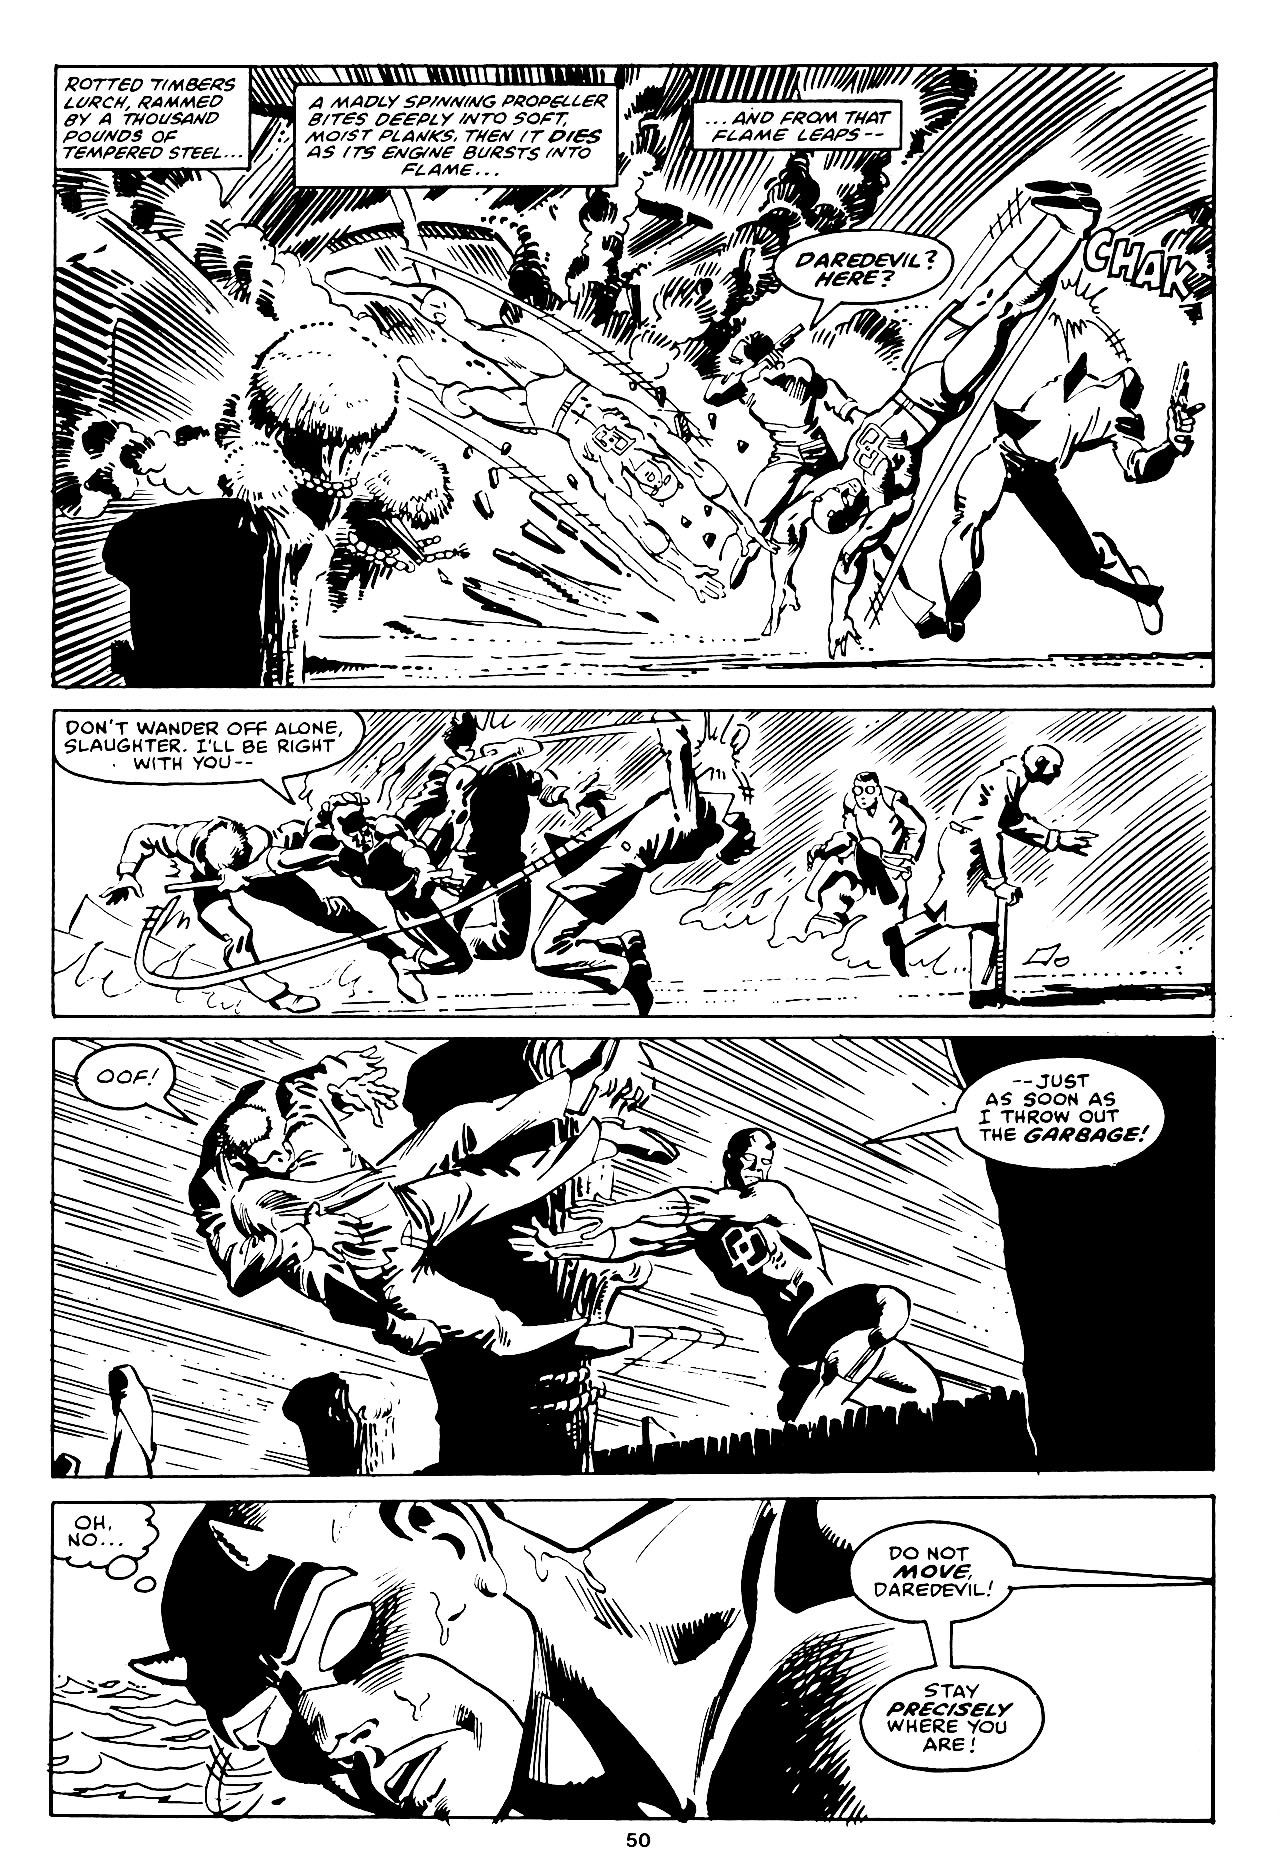 Daredevil in elektra penciled by frank miller and inked by klaus janson pg 20